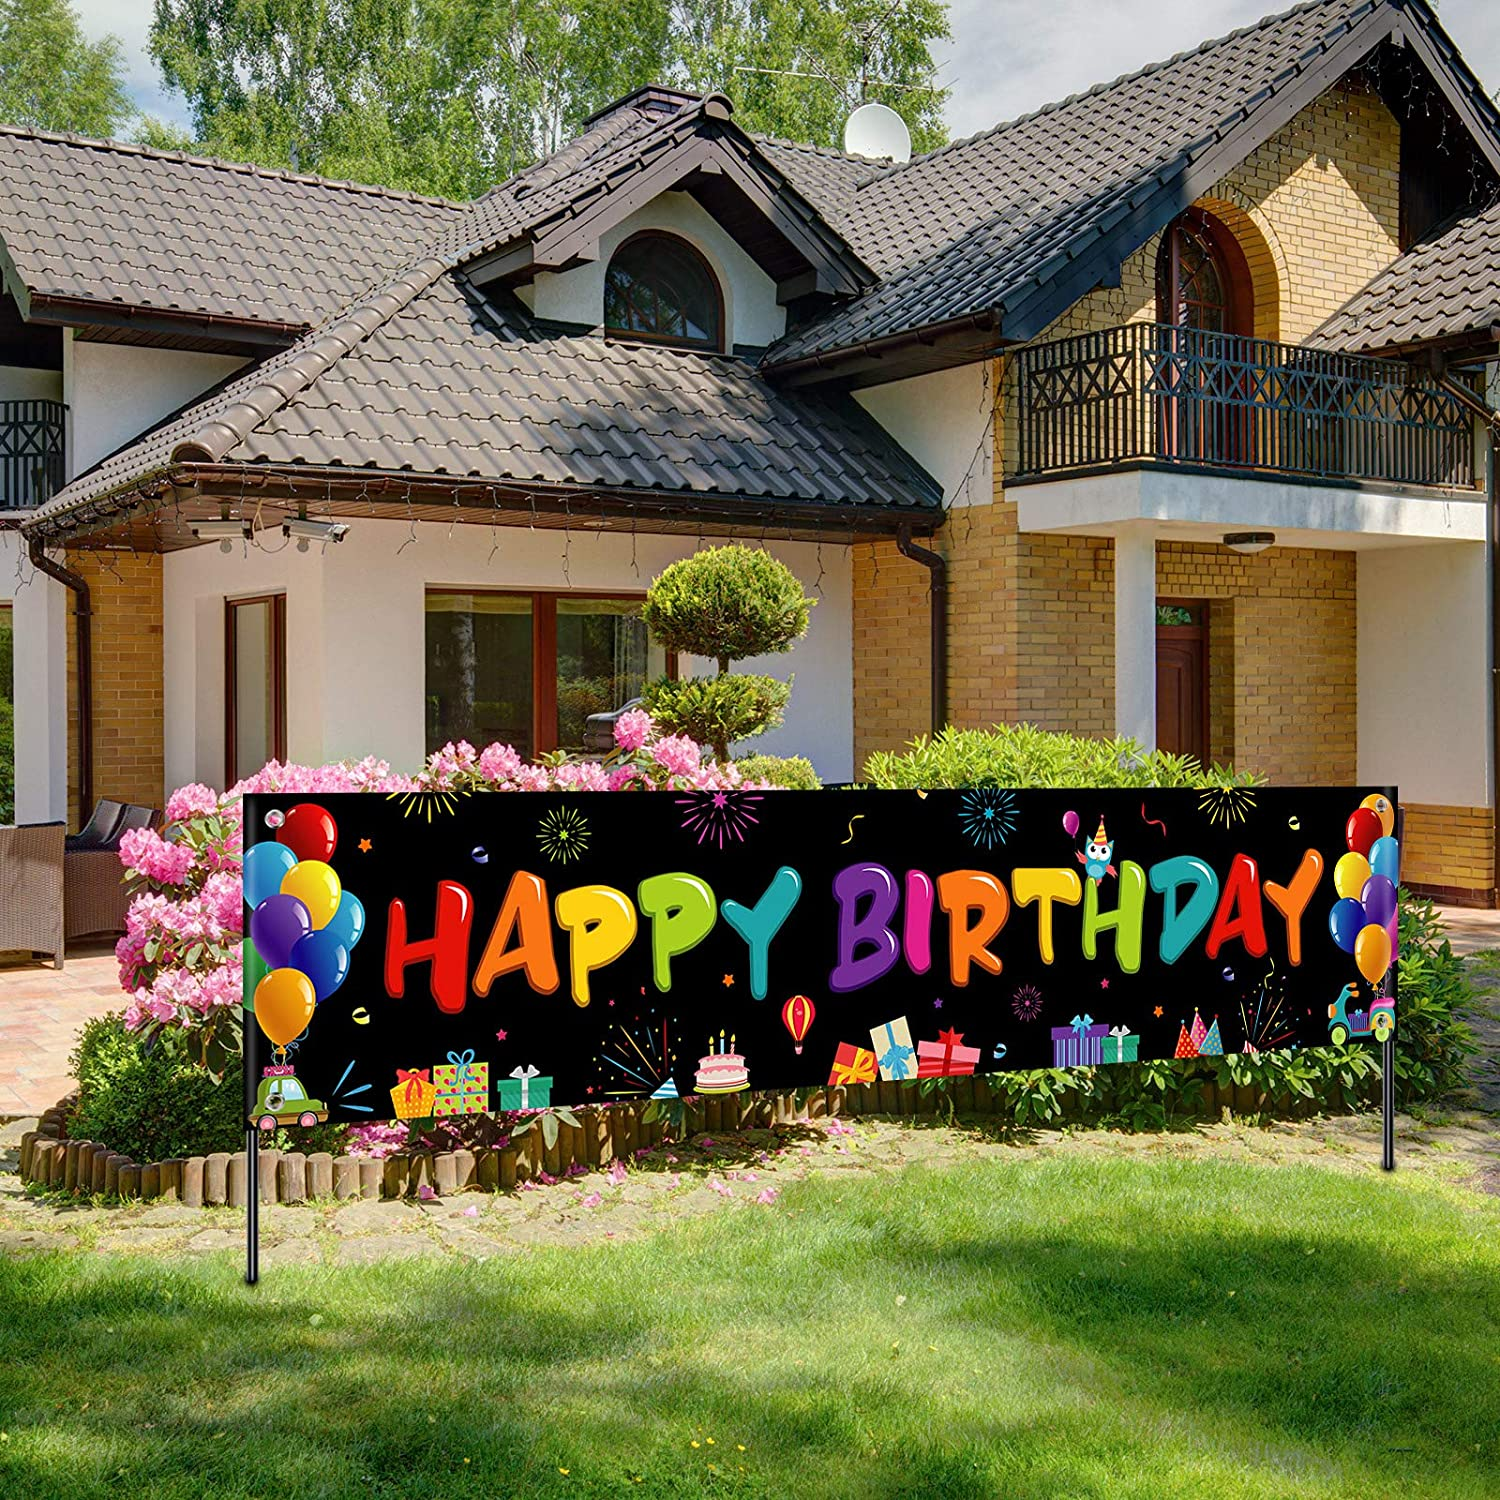 Large Fabric Happy Birthday Sign Backdrop Background Colorful Happy Birthday Banner Happy Birthday Yard Sign for Kids Birthday Party Decorations Girls Boys Bday Decor 71 x 15.7 inches Dark